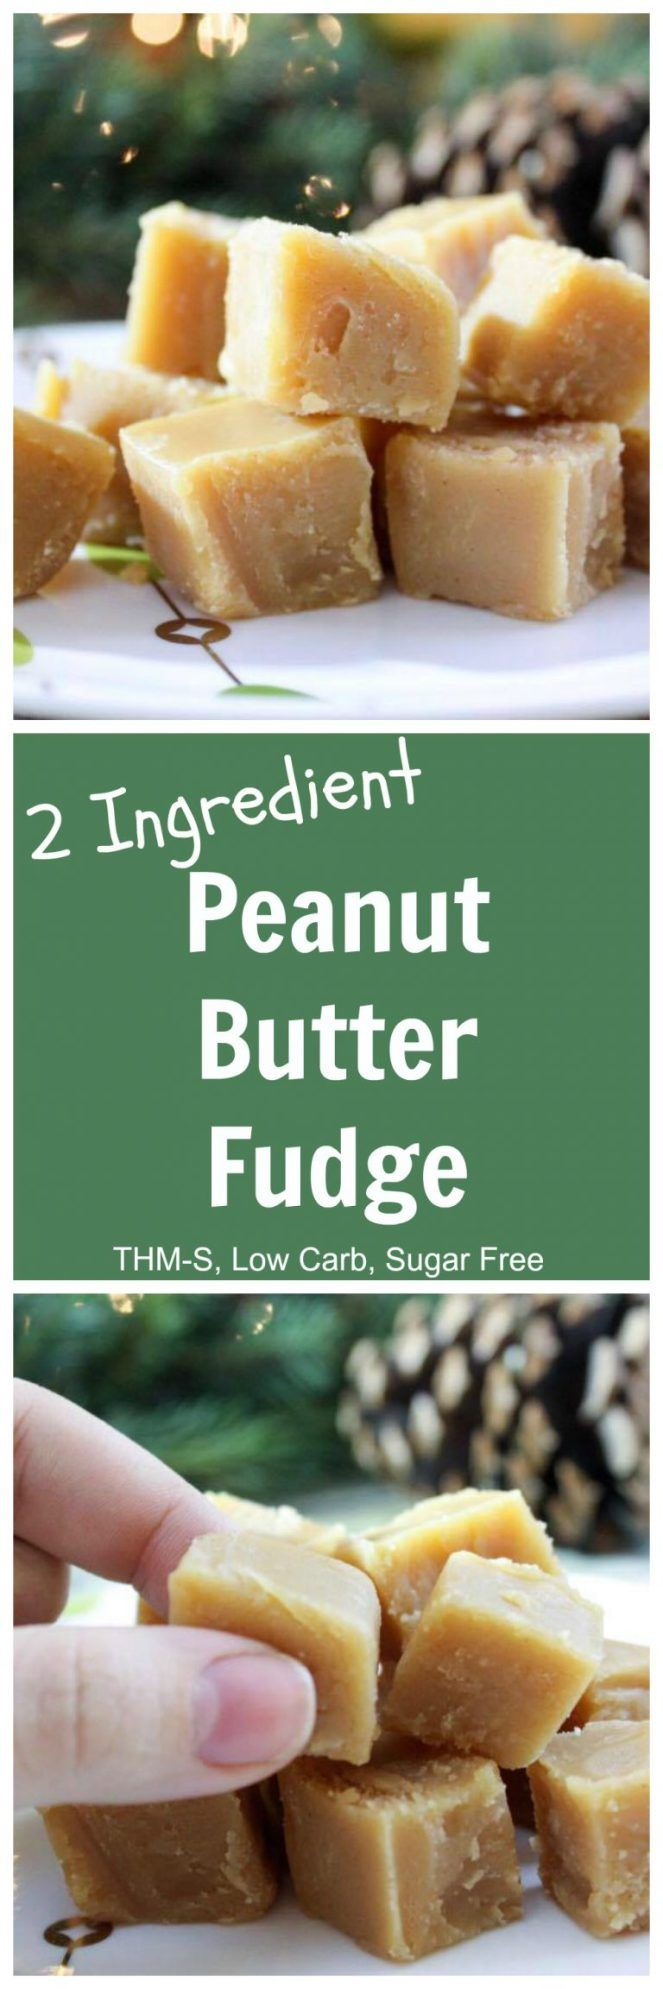 1 cup Homemade Low Carb Sugar Free Sweetened Condensed Milk, 1/2 Cup Natural No Sugar Added Peanut Butter. Combine warm sweetened condensed milk with peanut butter and stir until all is combined. Pour into a Silicone Pan or an 8x8 glass pan lined with parchment paper. I used this Silicone Mini Loaf Pan and filled two of the cavities. Refrigerate or freeze until firm.